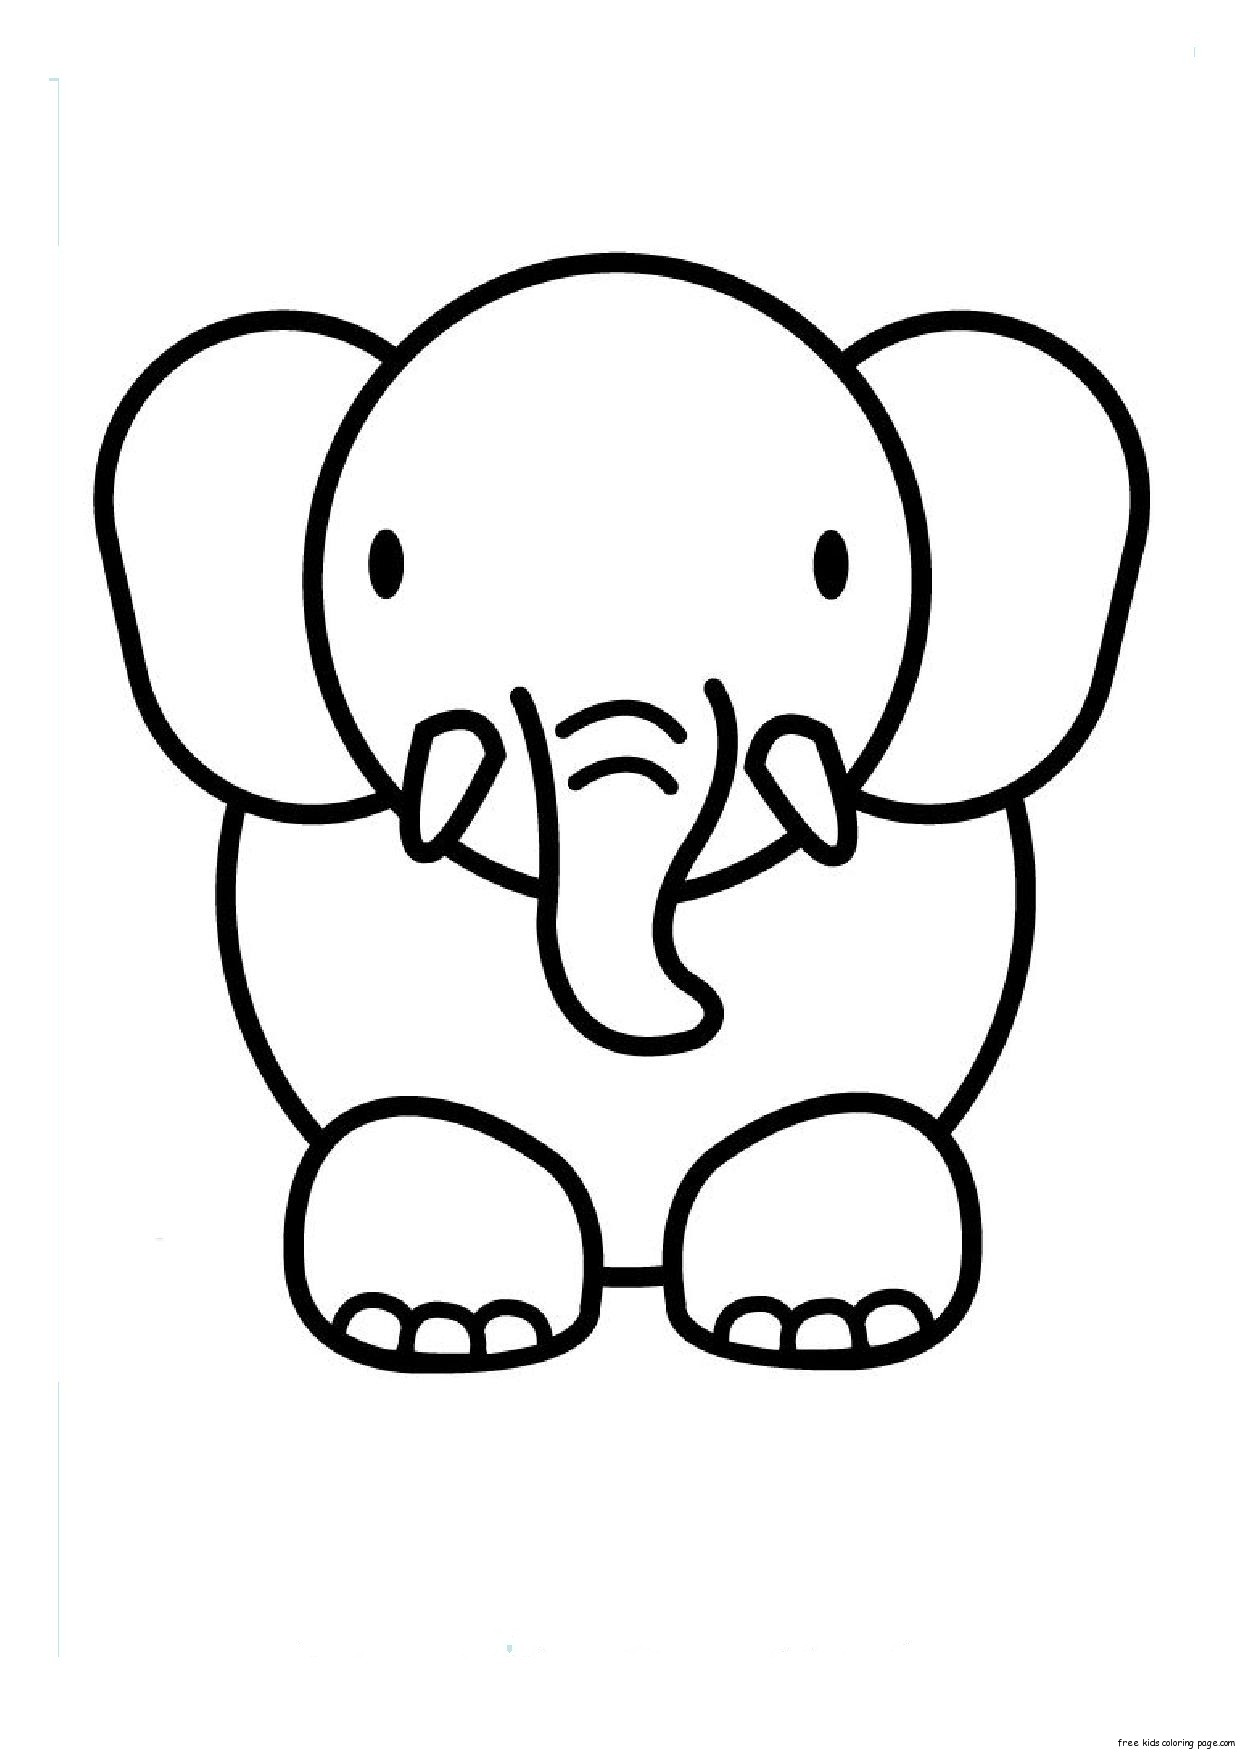 pics photos animal drawings for kids to color tattoo lettering